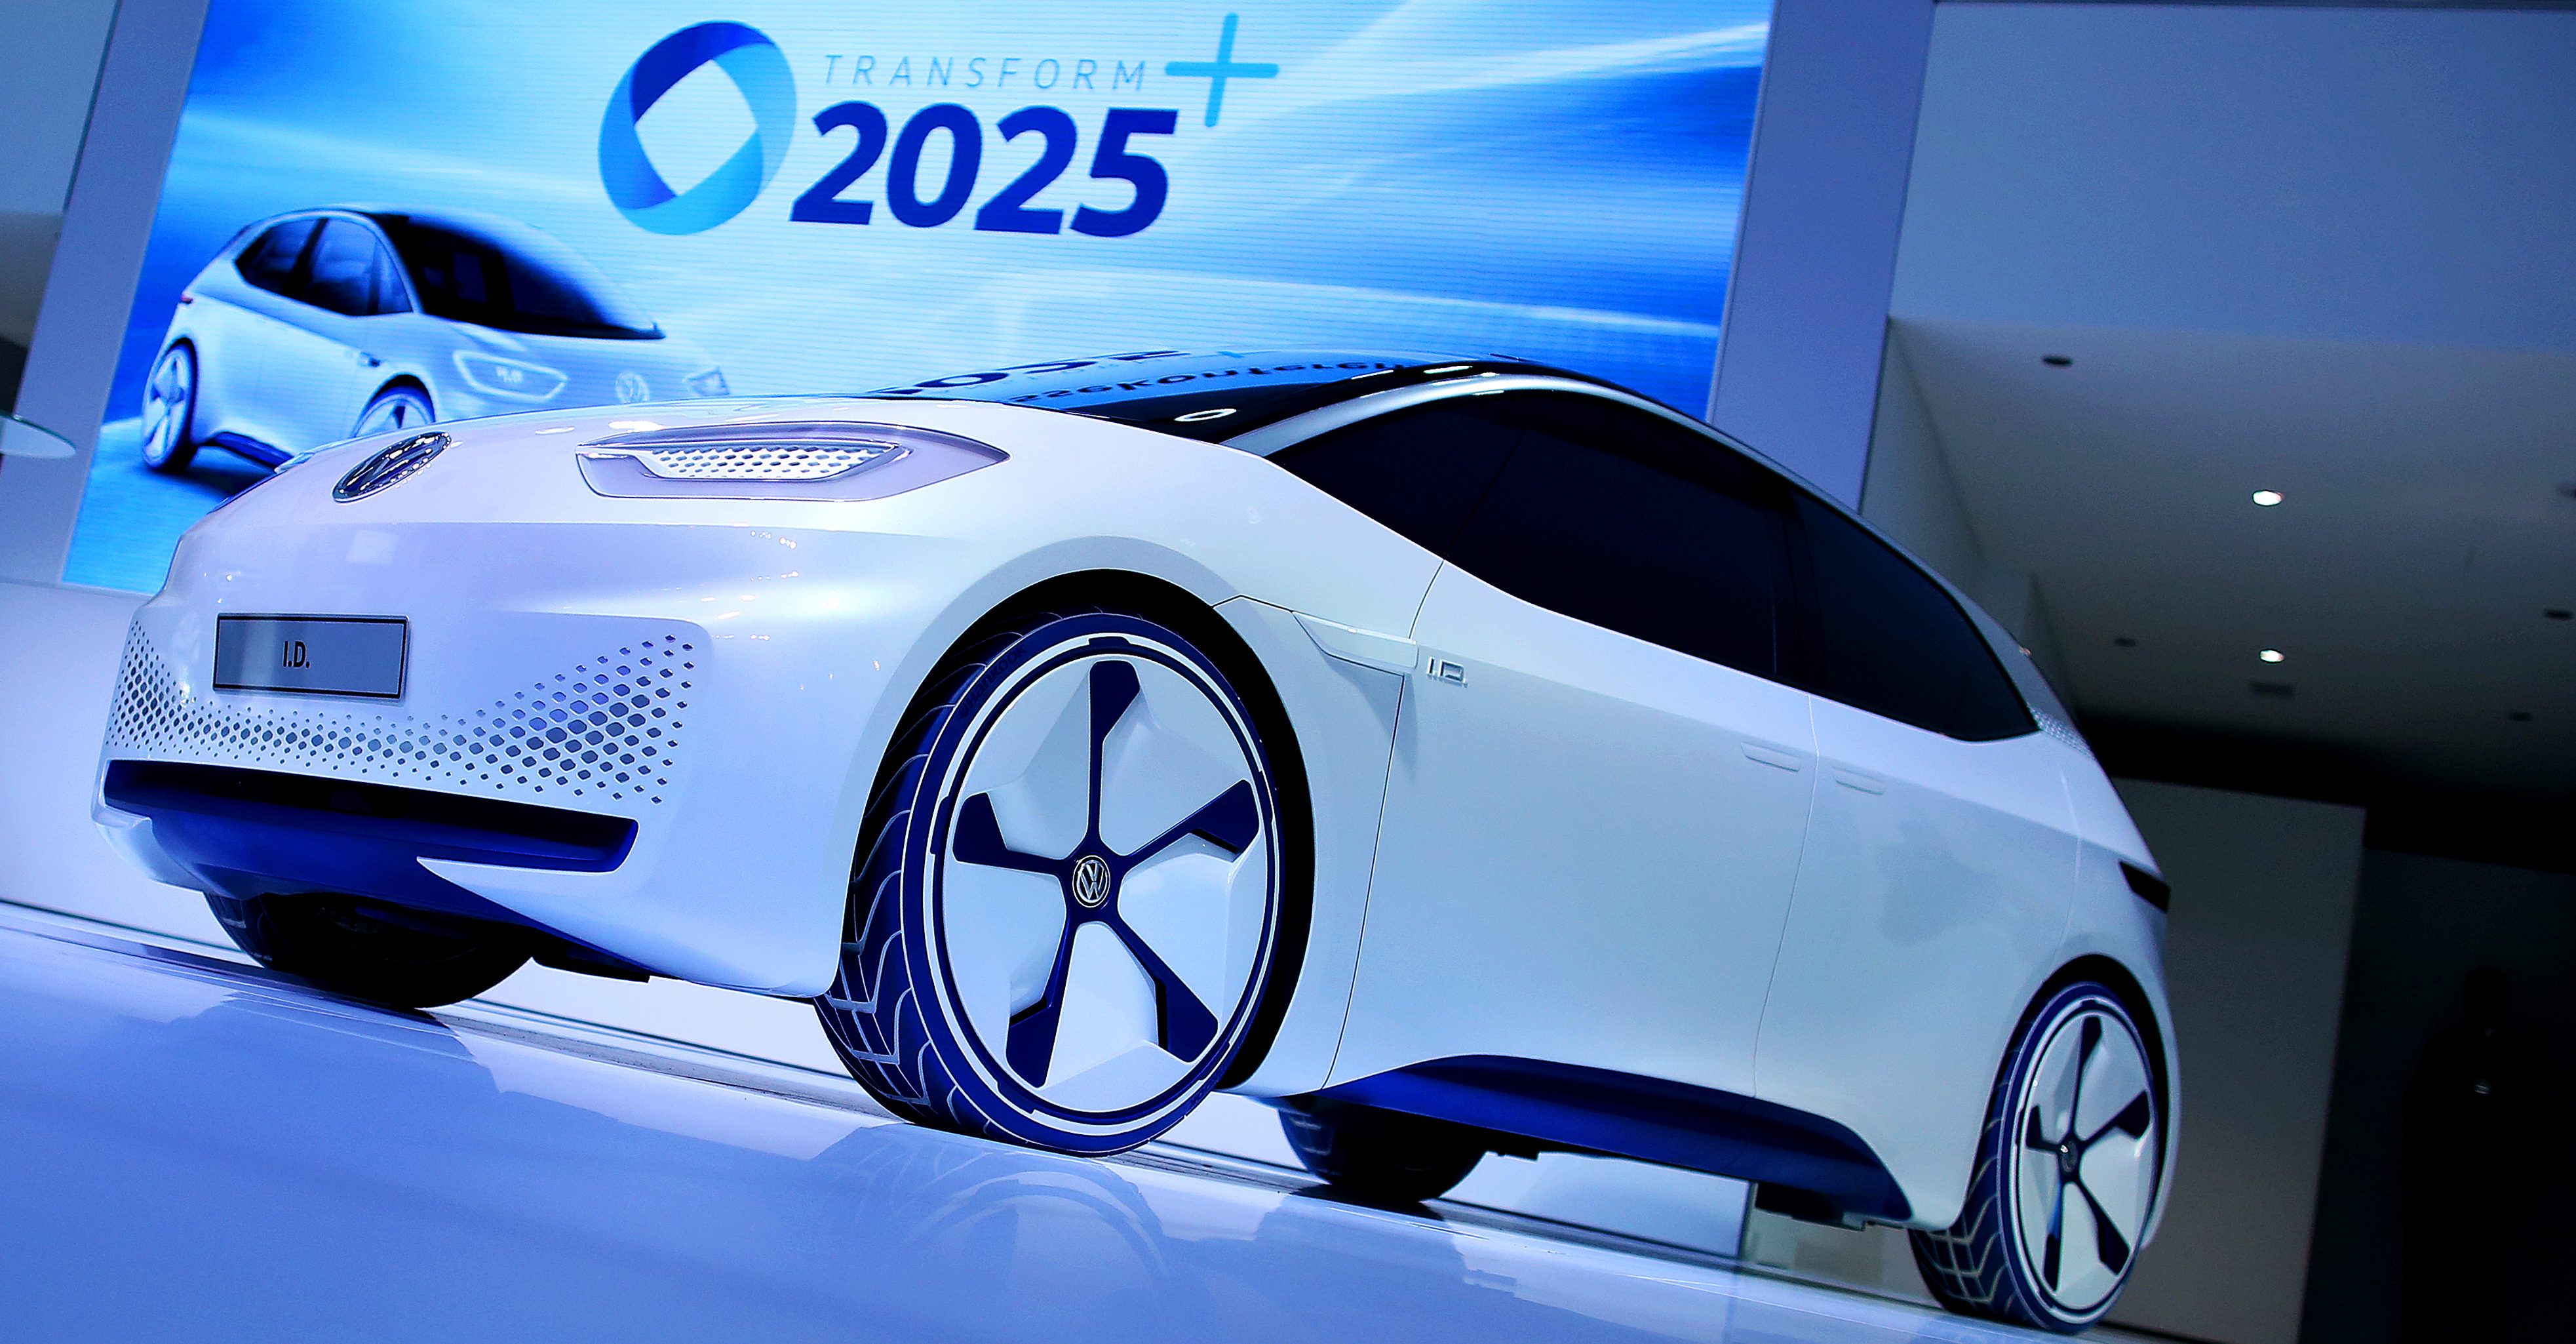 By 2025 Electric Cars Will Be Cheaper Than Petrol Cars